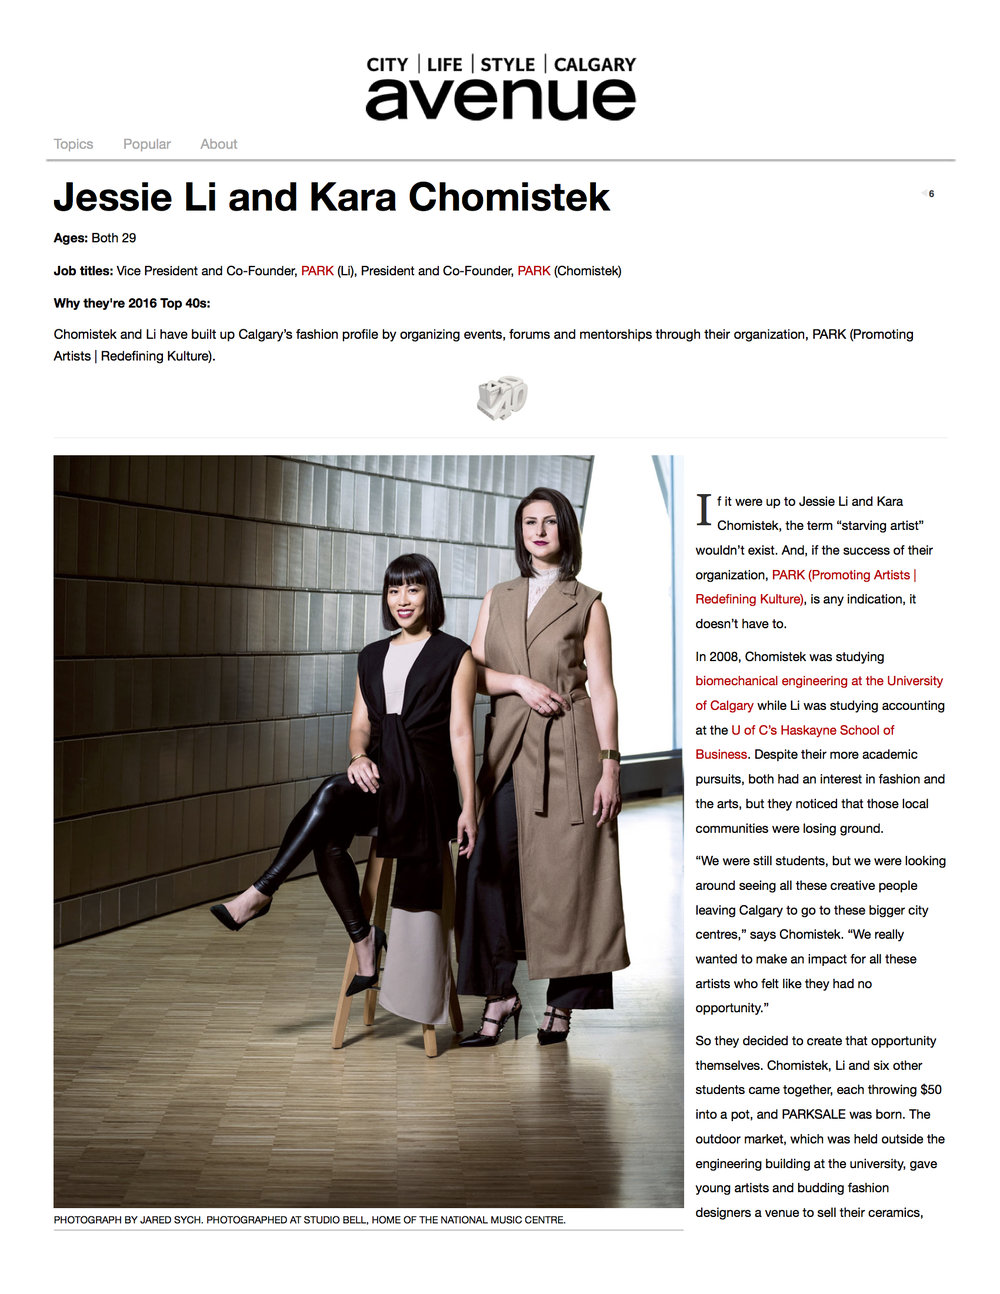 Jessie Li and Kara Chomistek | Top 40 Under 40 | Avenue Calgary.jpg